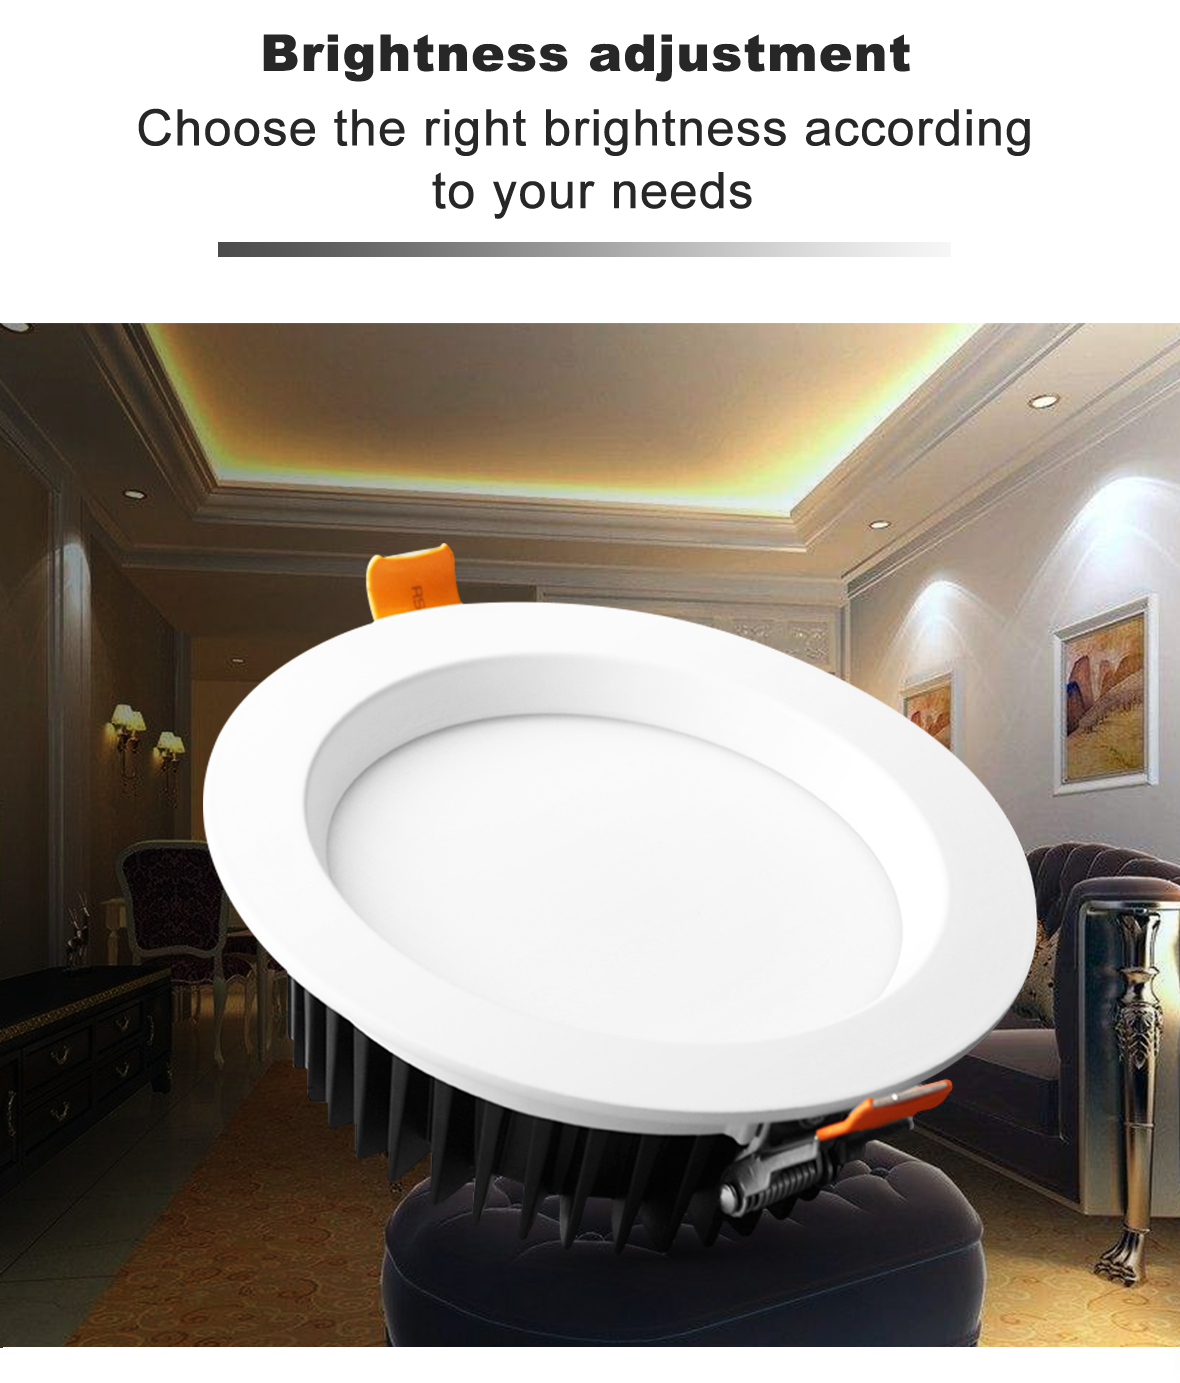 Smart Home 12W LED RGB+CCT Downlight Bulb Amazon Alexa Echo Plus Voice Control Dual White And Color LED Downlighters